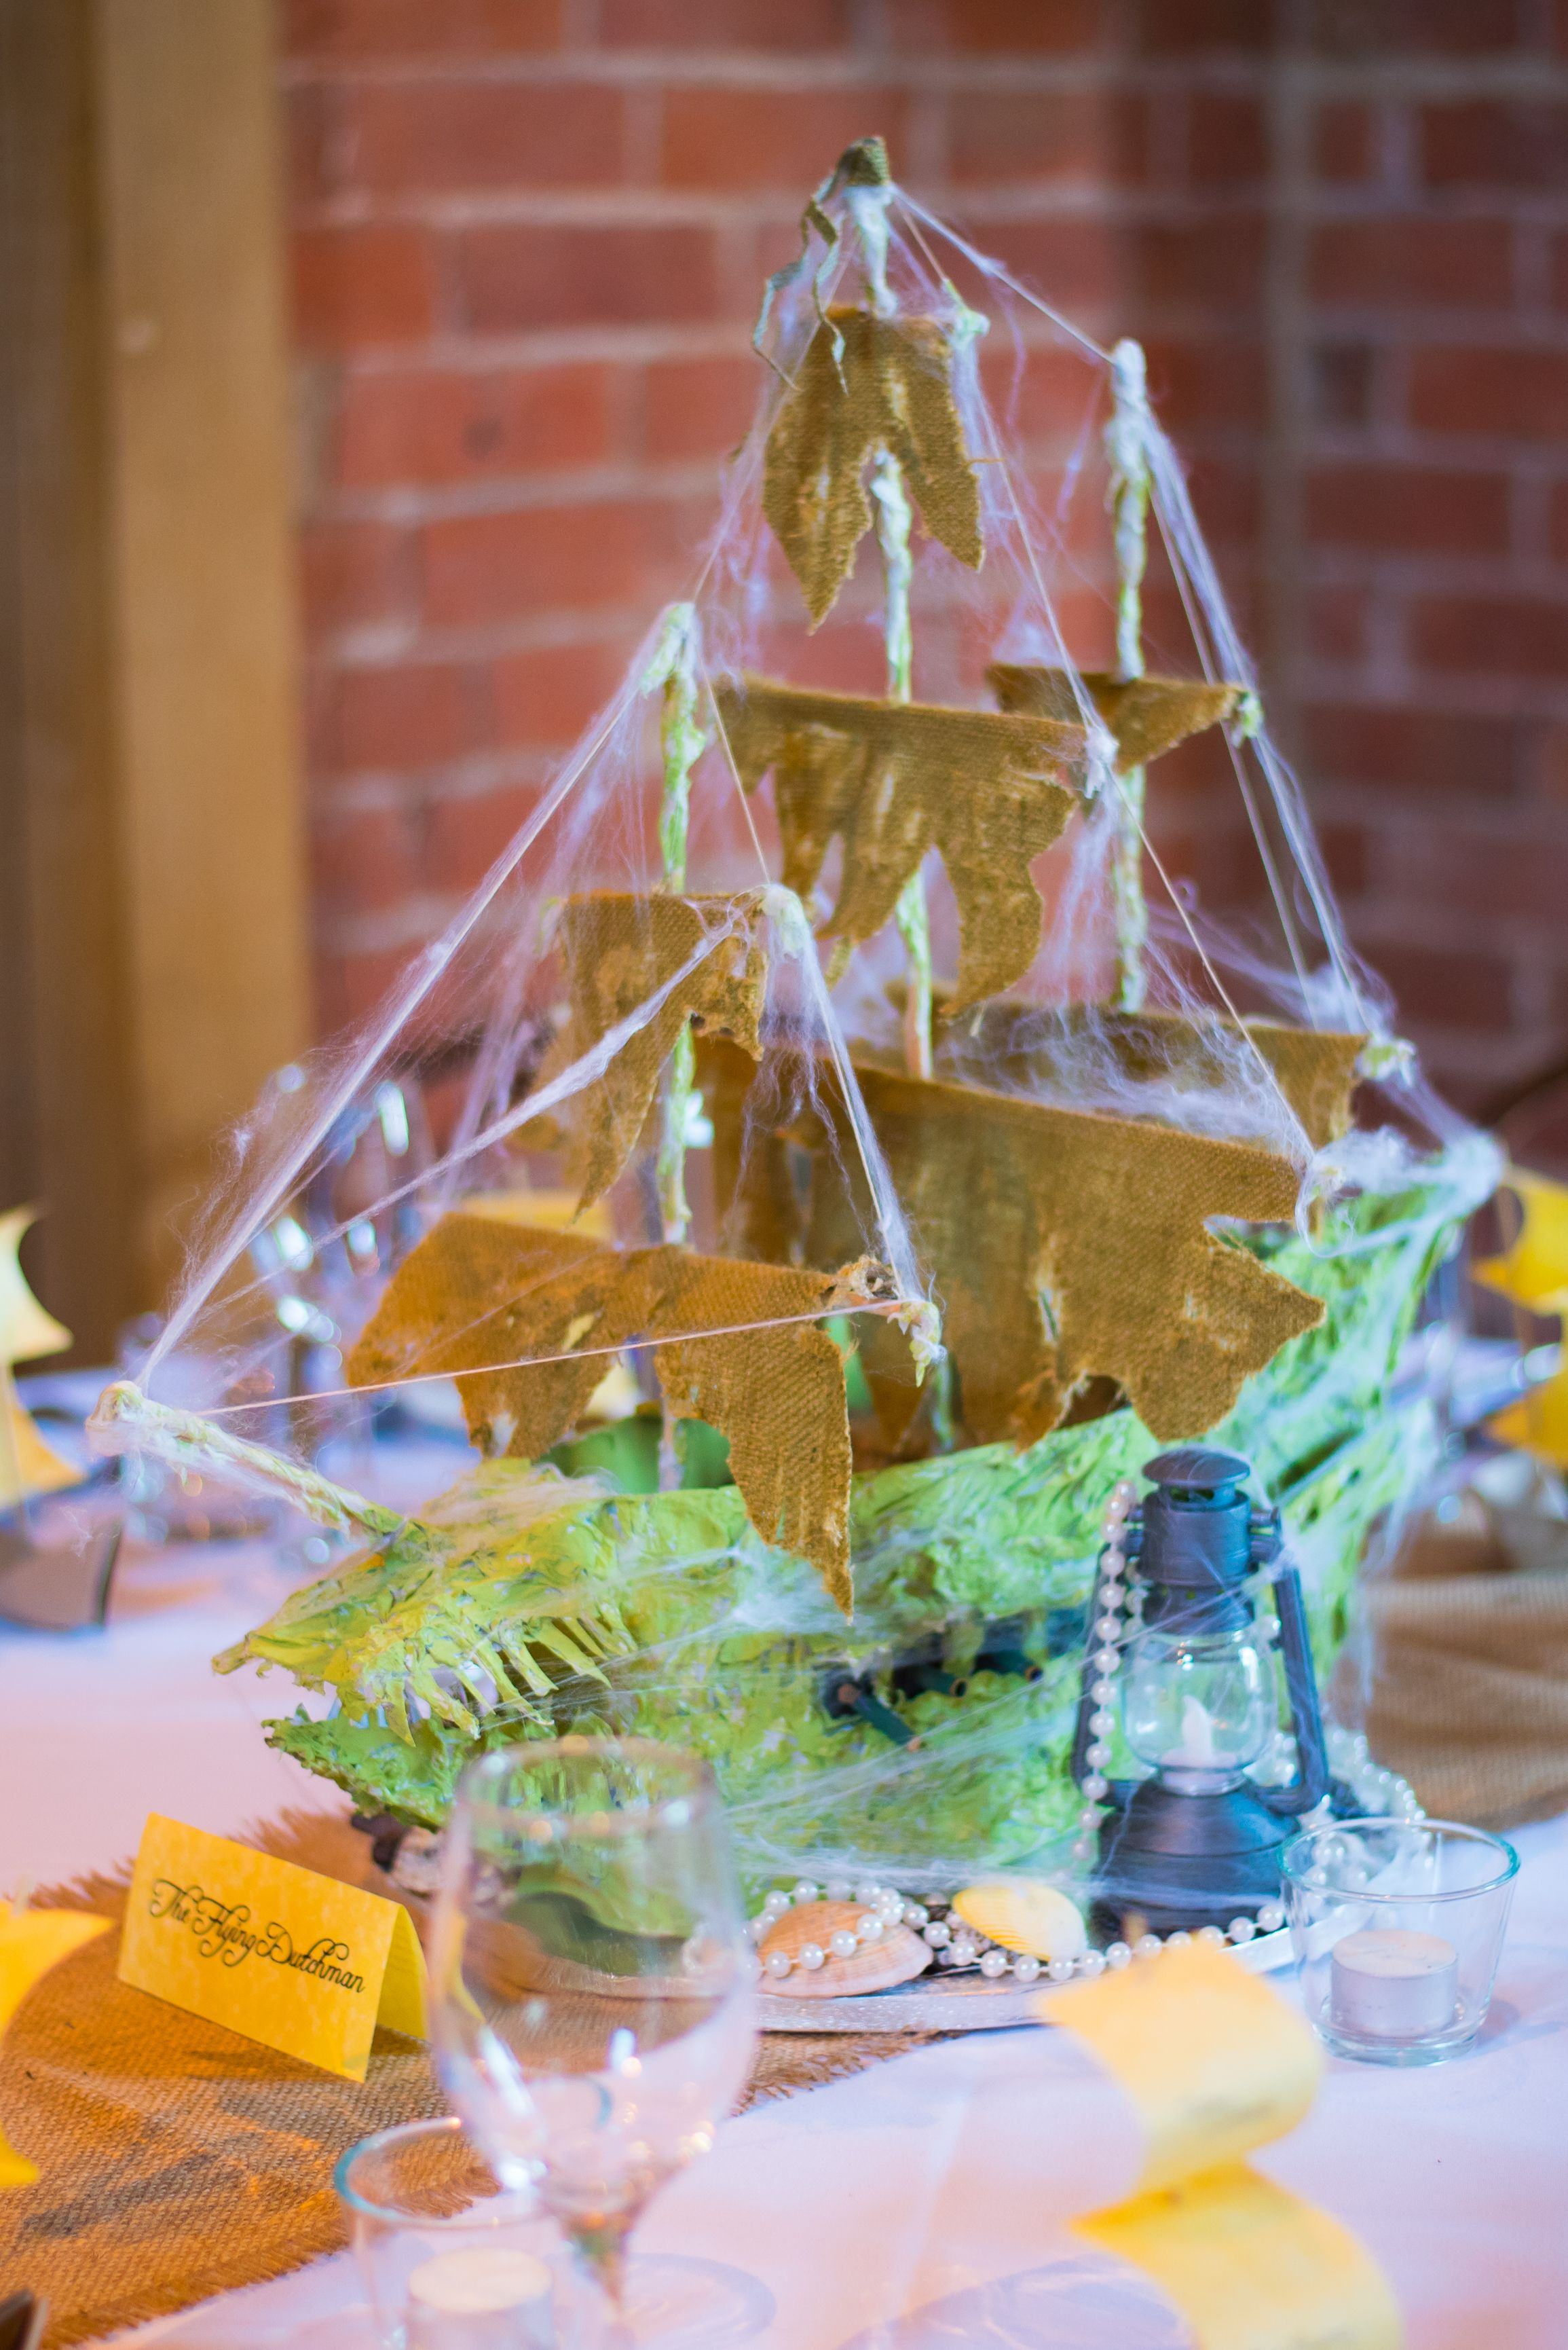 Pirate theme centrepiece wedding decoration the flying dutchman pirate theme centrepiece wedding decoration the flying dutchman pirate wedding centrepiece junglespirit Image collections